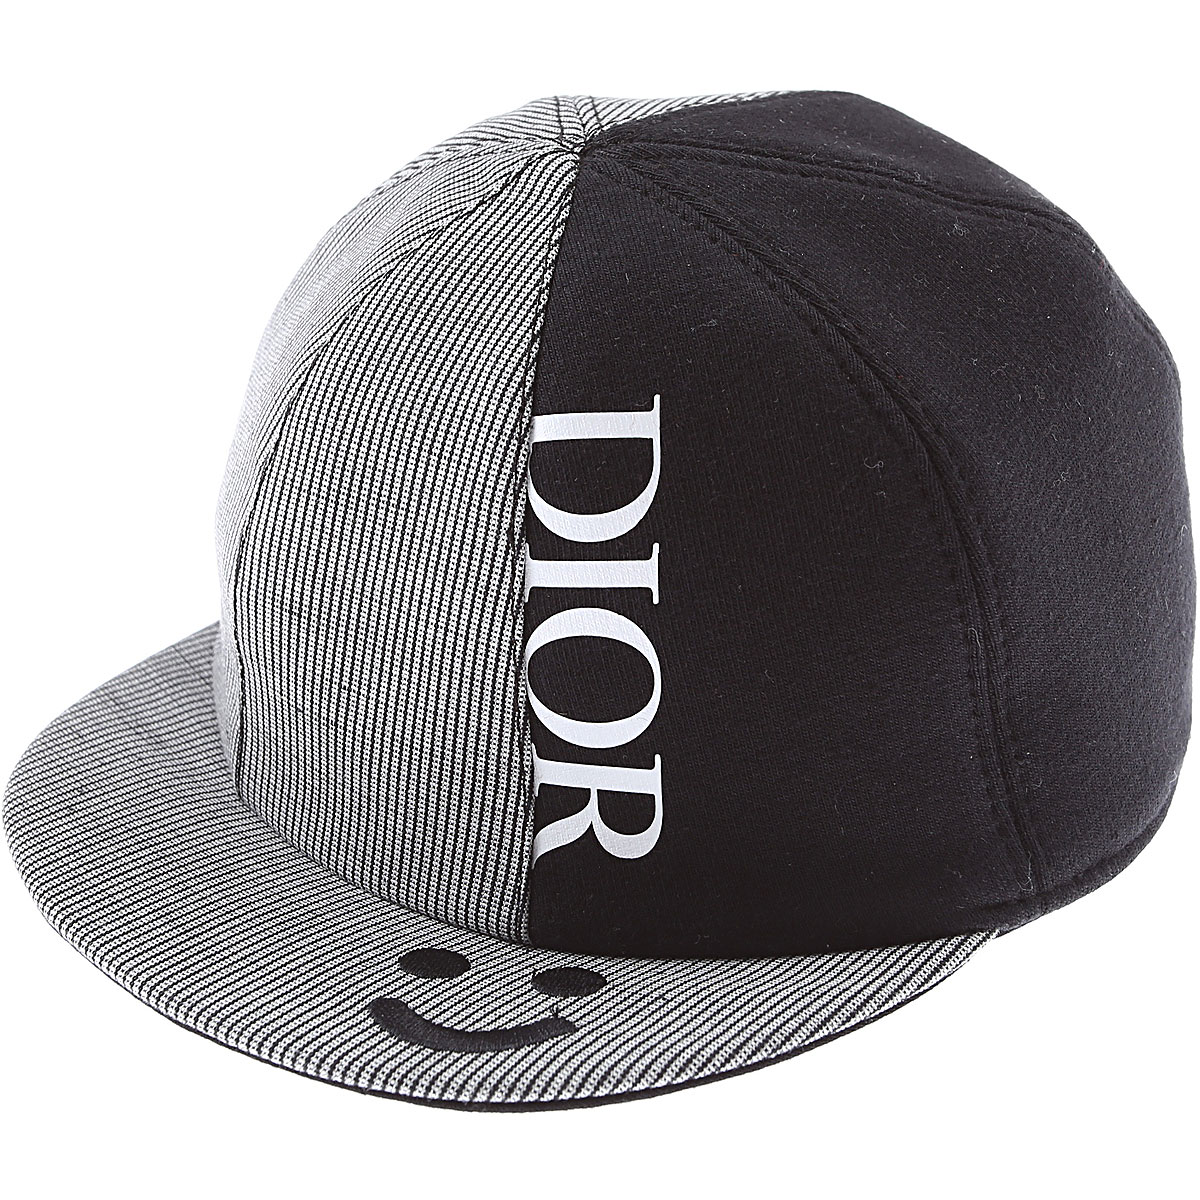 Baby Dior Baby Hats for Boys On Sale, Black, Cotton, 2019, I II